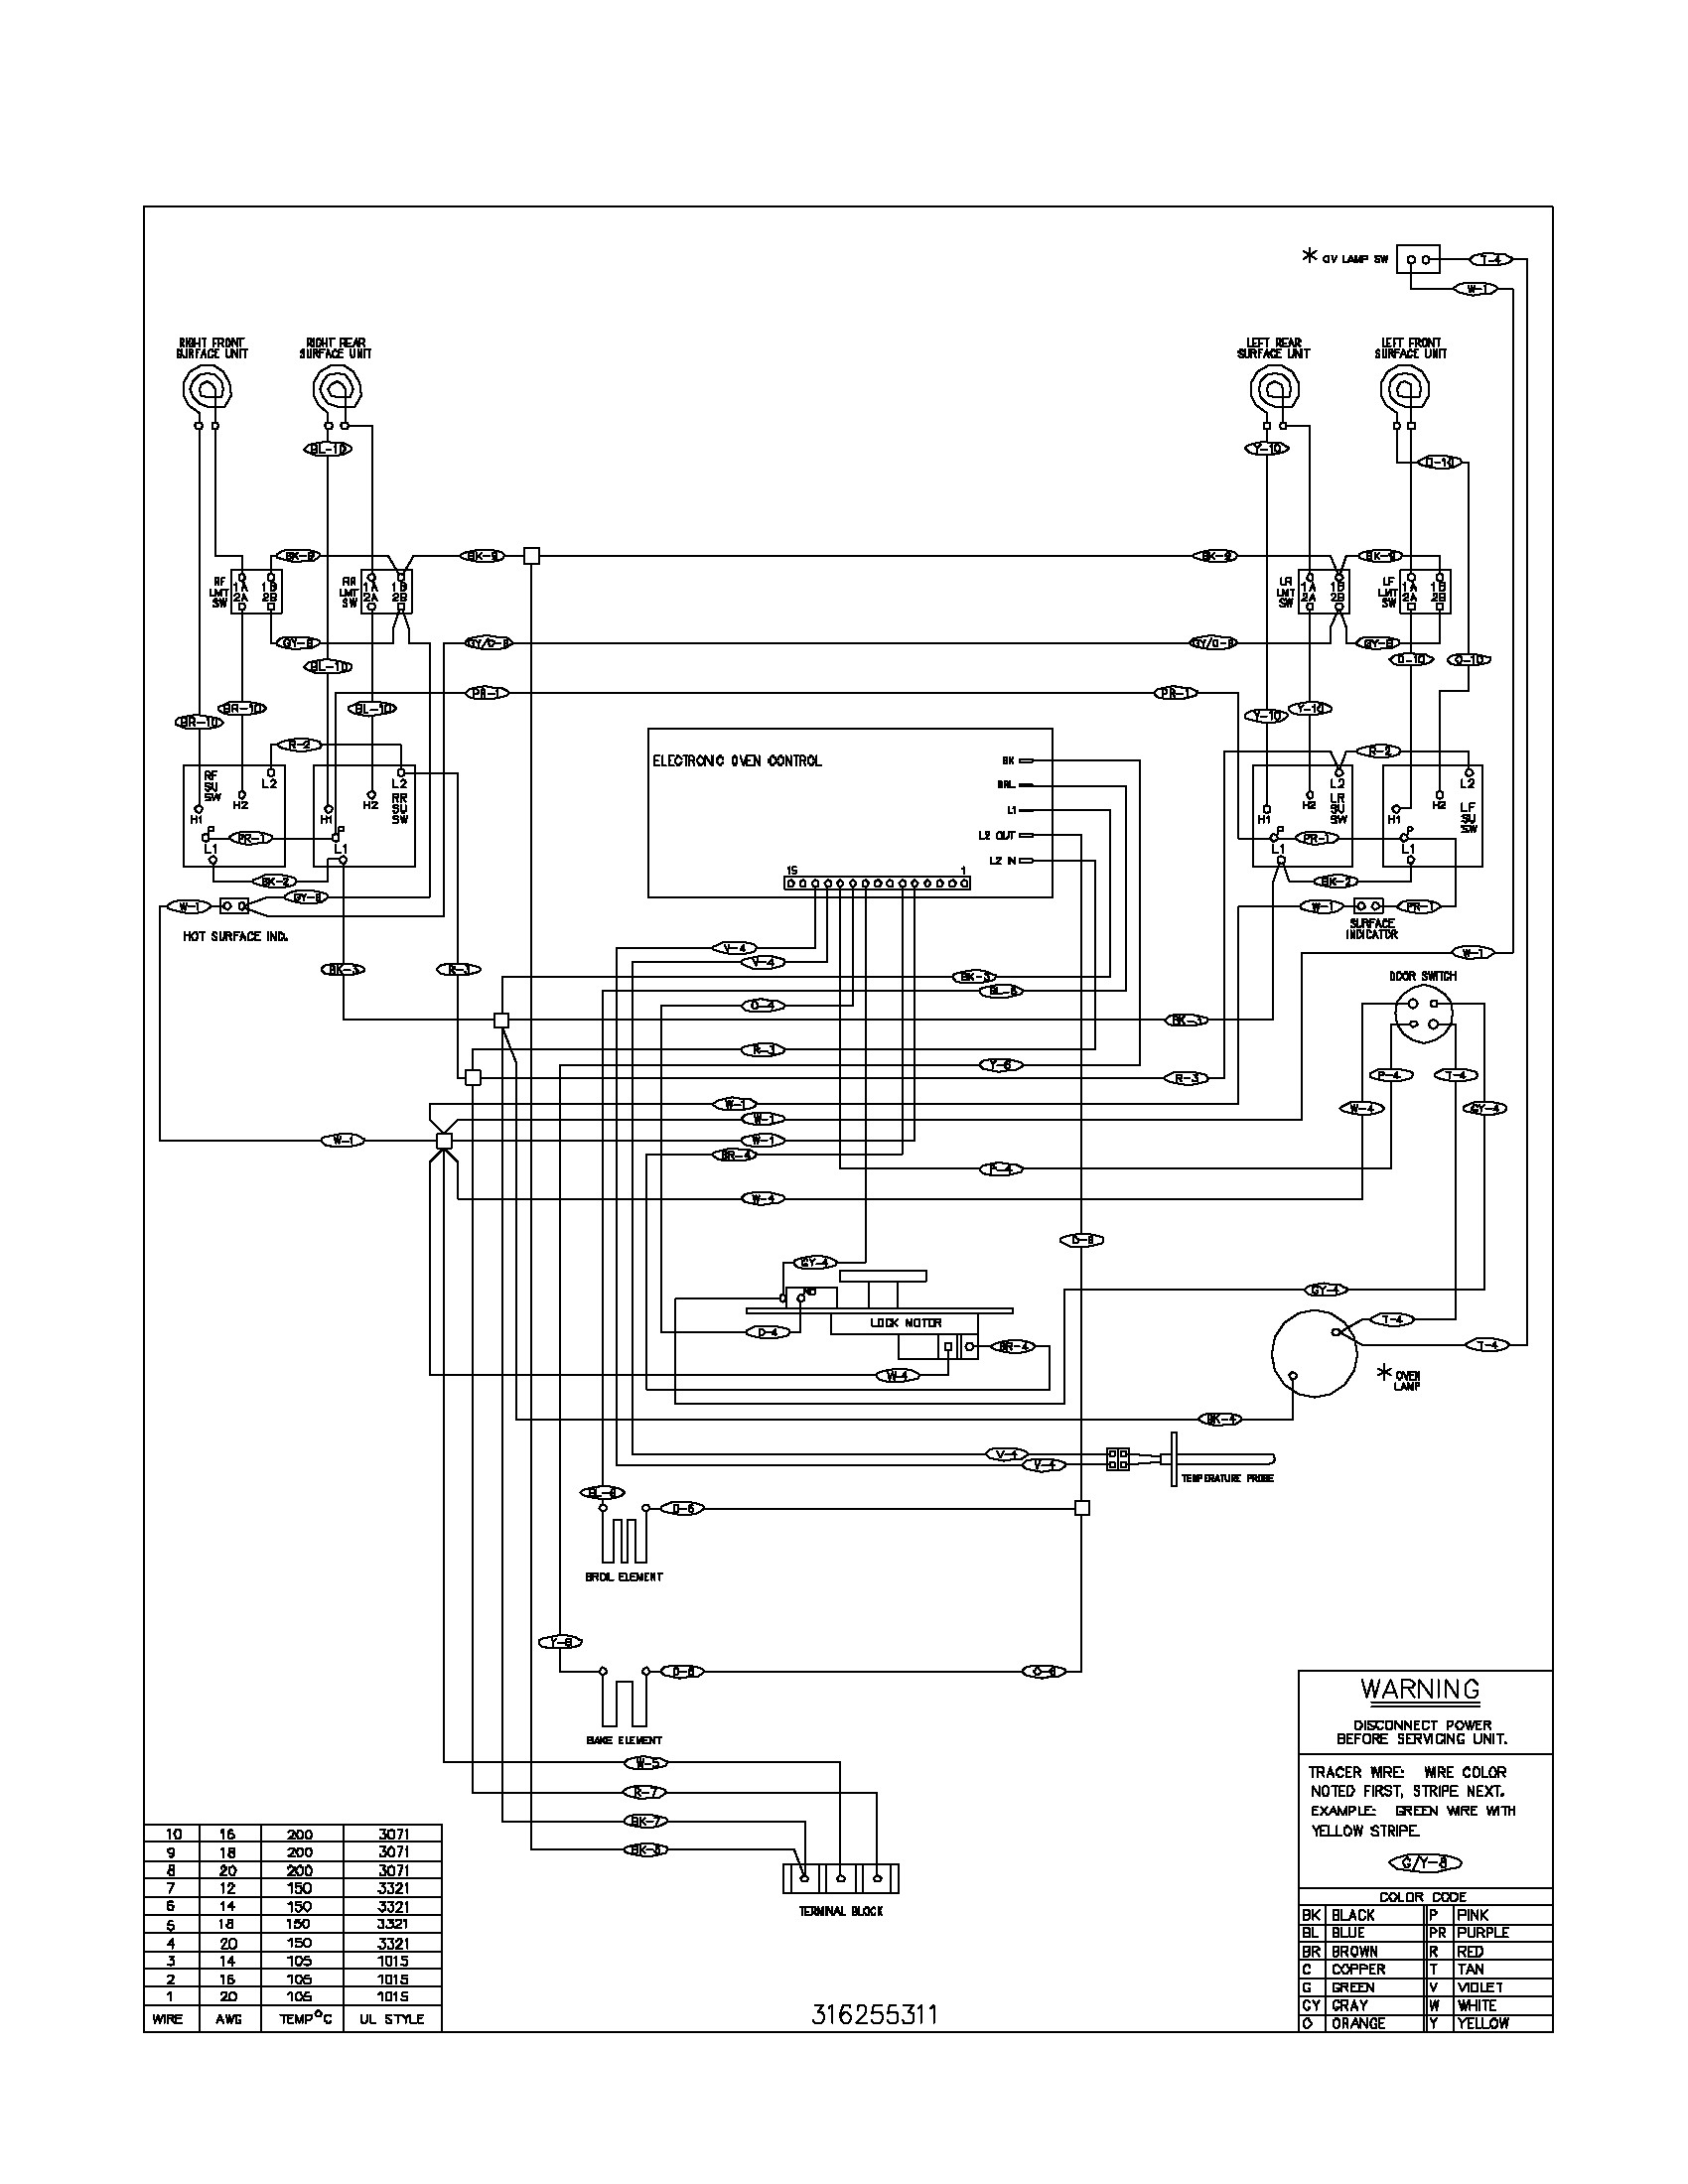 Electric Range Outlet Wiring